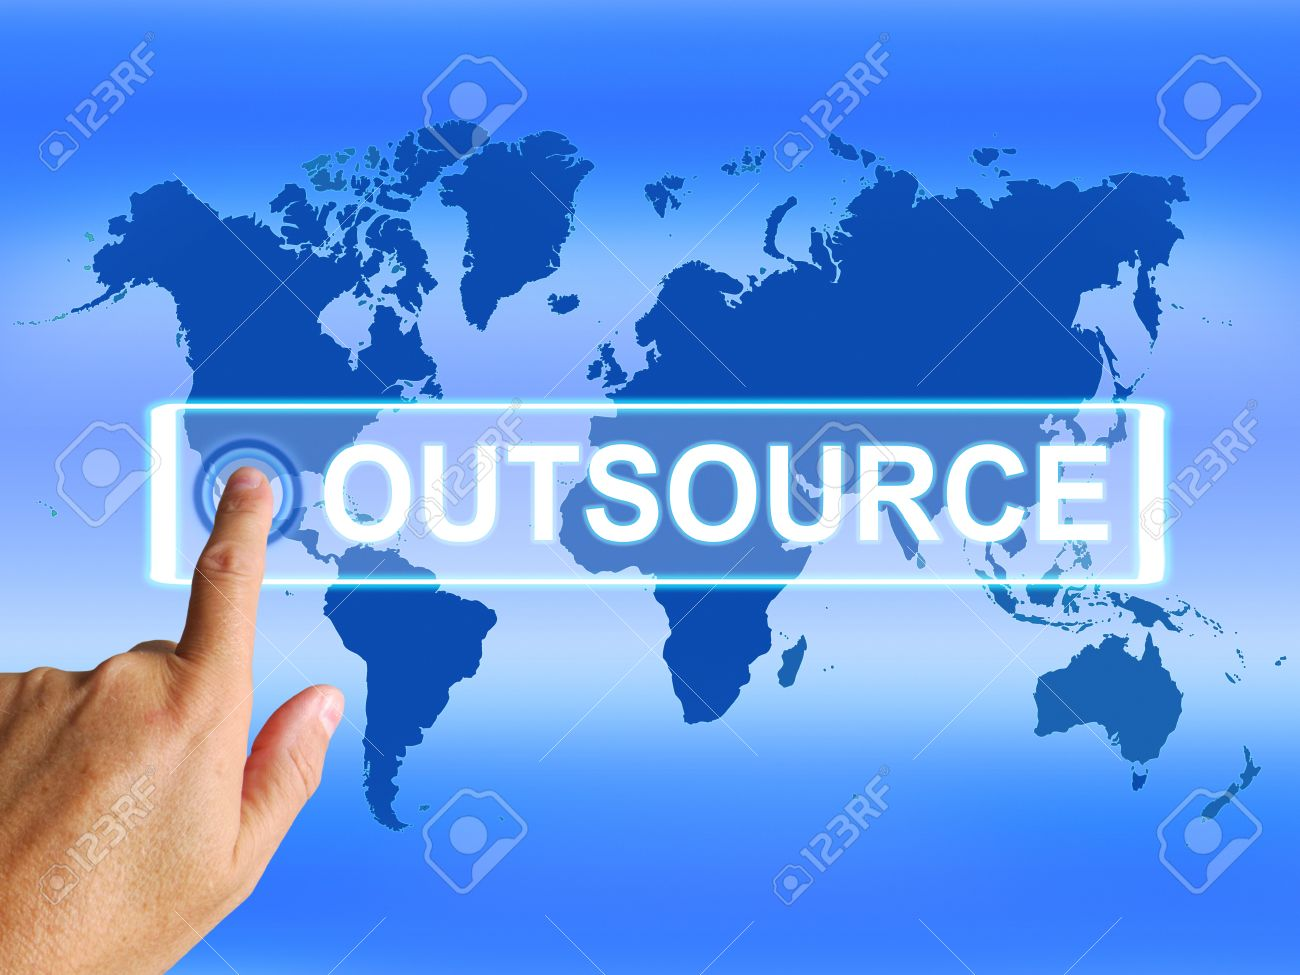 Outsource Map Meaning Worldwide Subcontracting or Outsourcing